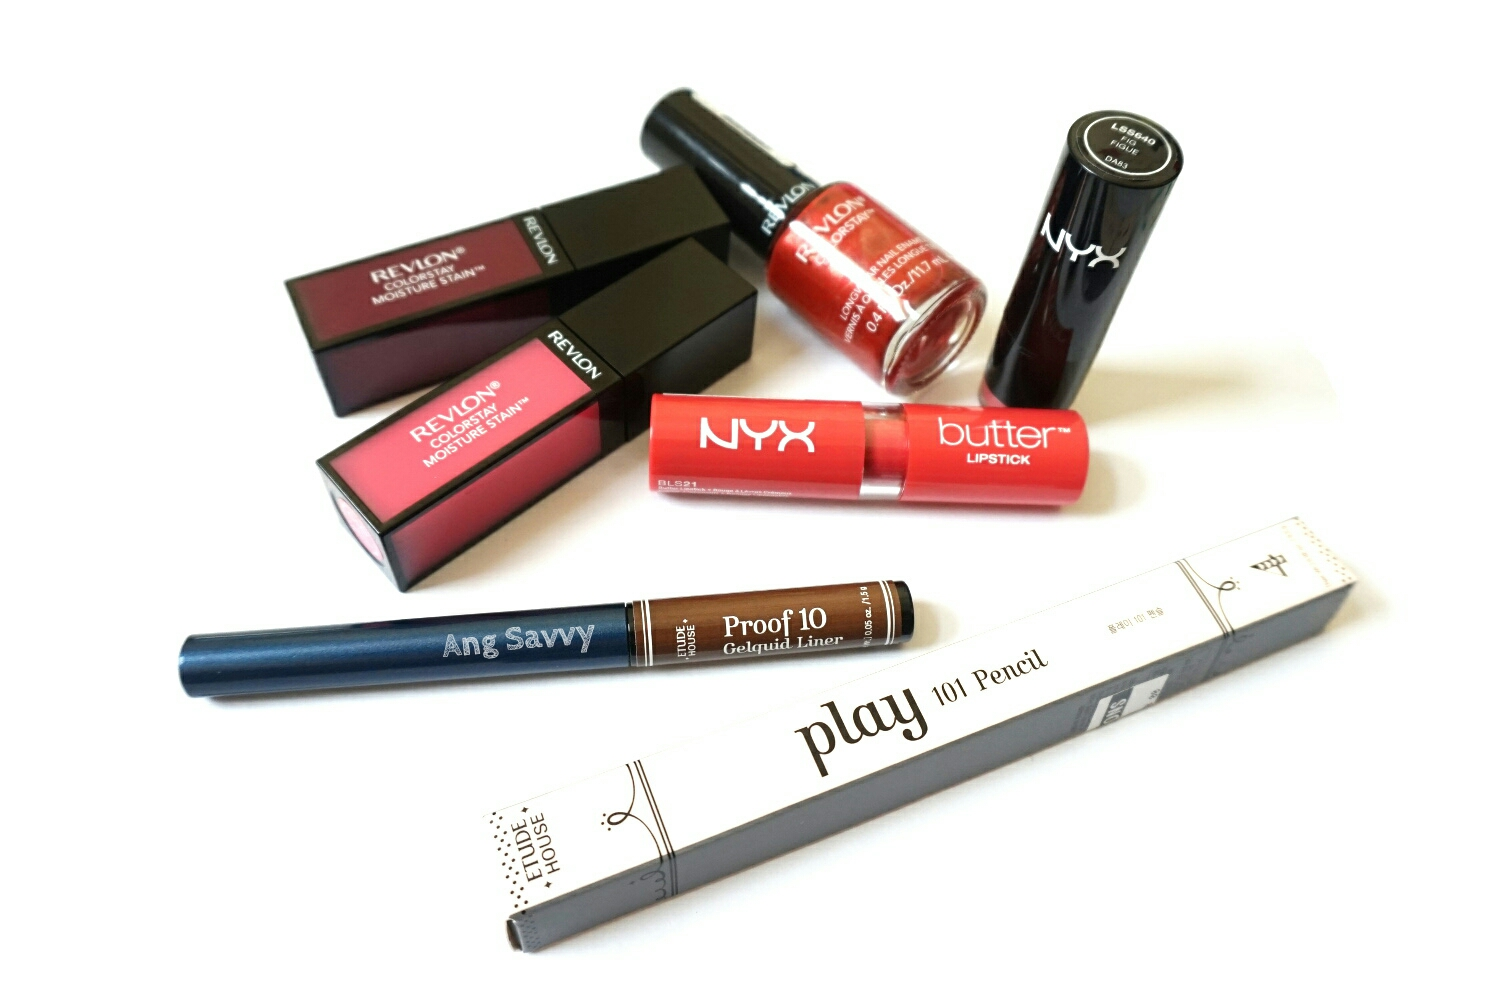 Makeup Mini Haul: Revlon Colorstay, NYX Lipsticks and Etude House Liners